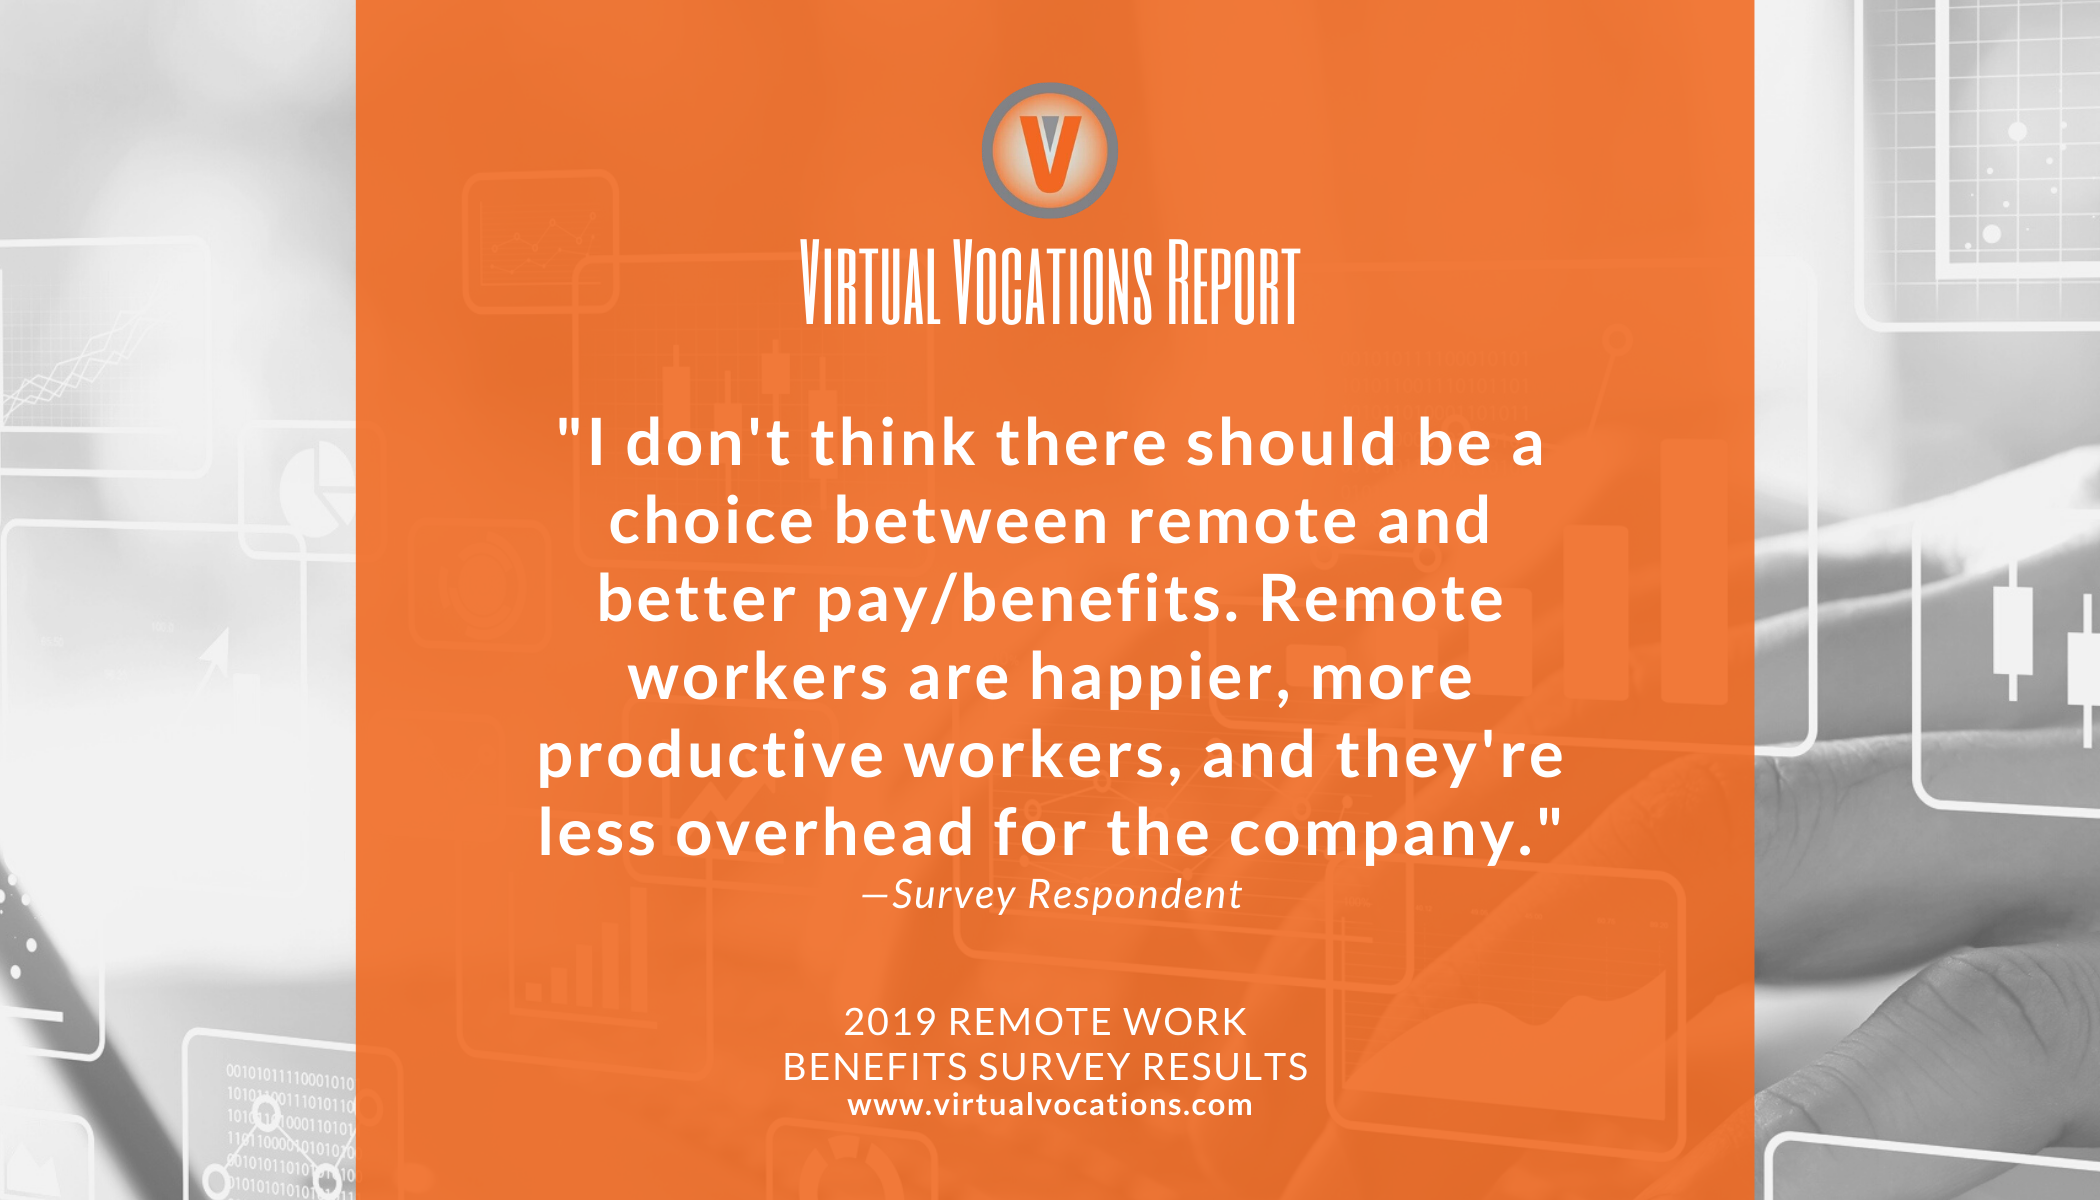 2019 Remote Work Benefits Survey Response - Virtual Vocations telecommute and remote jobs